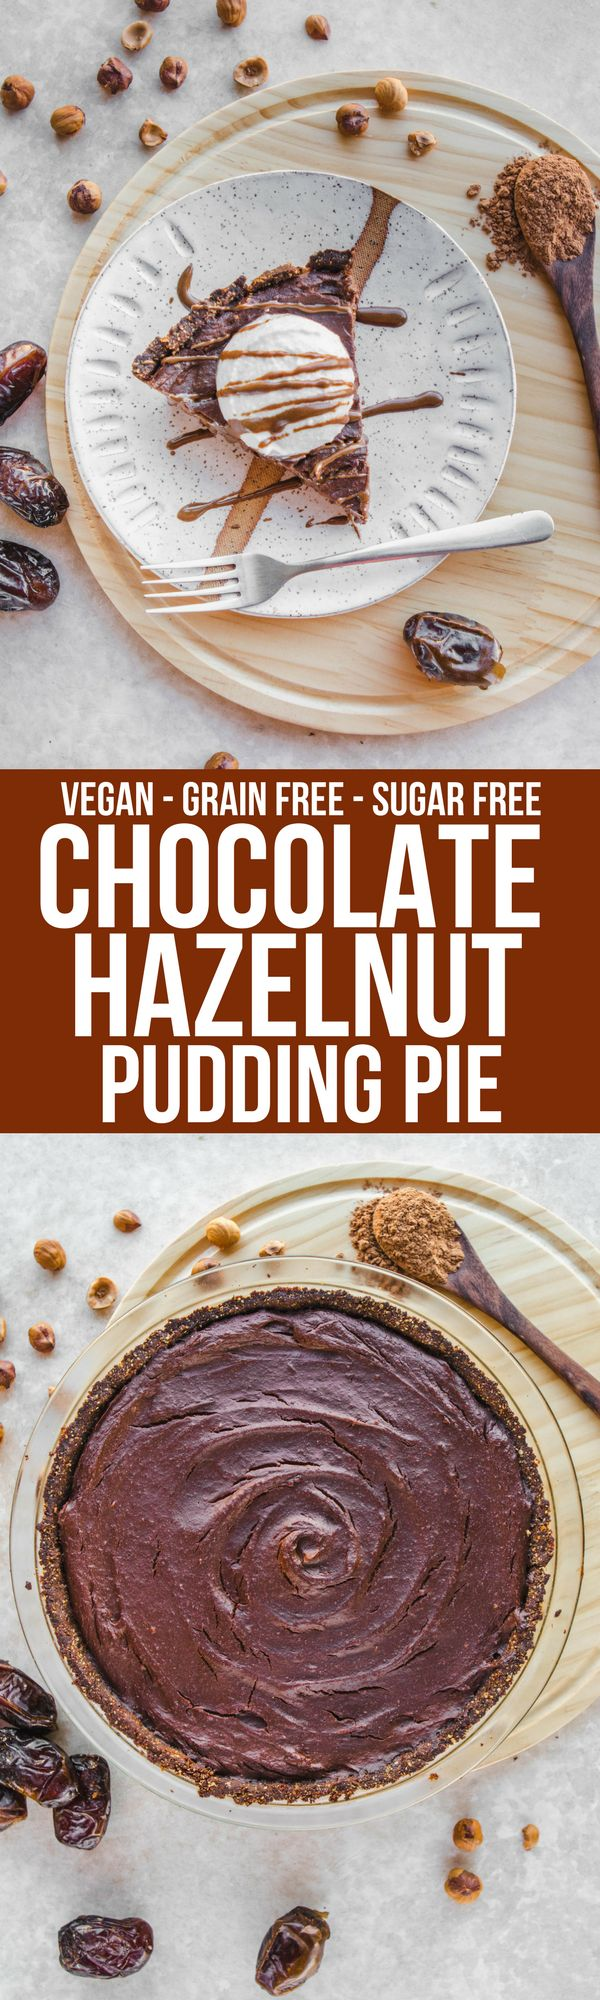 Chocolate Hazelnut Pudding Pie (Vegan & Grain Free) - From My Bowl